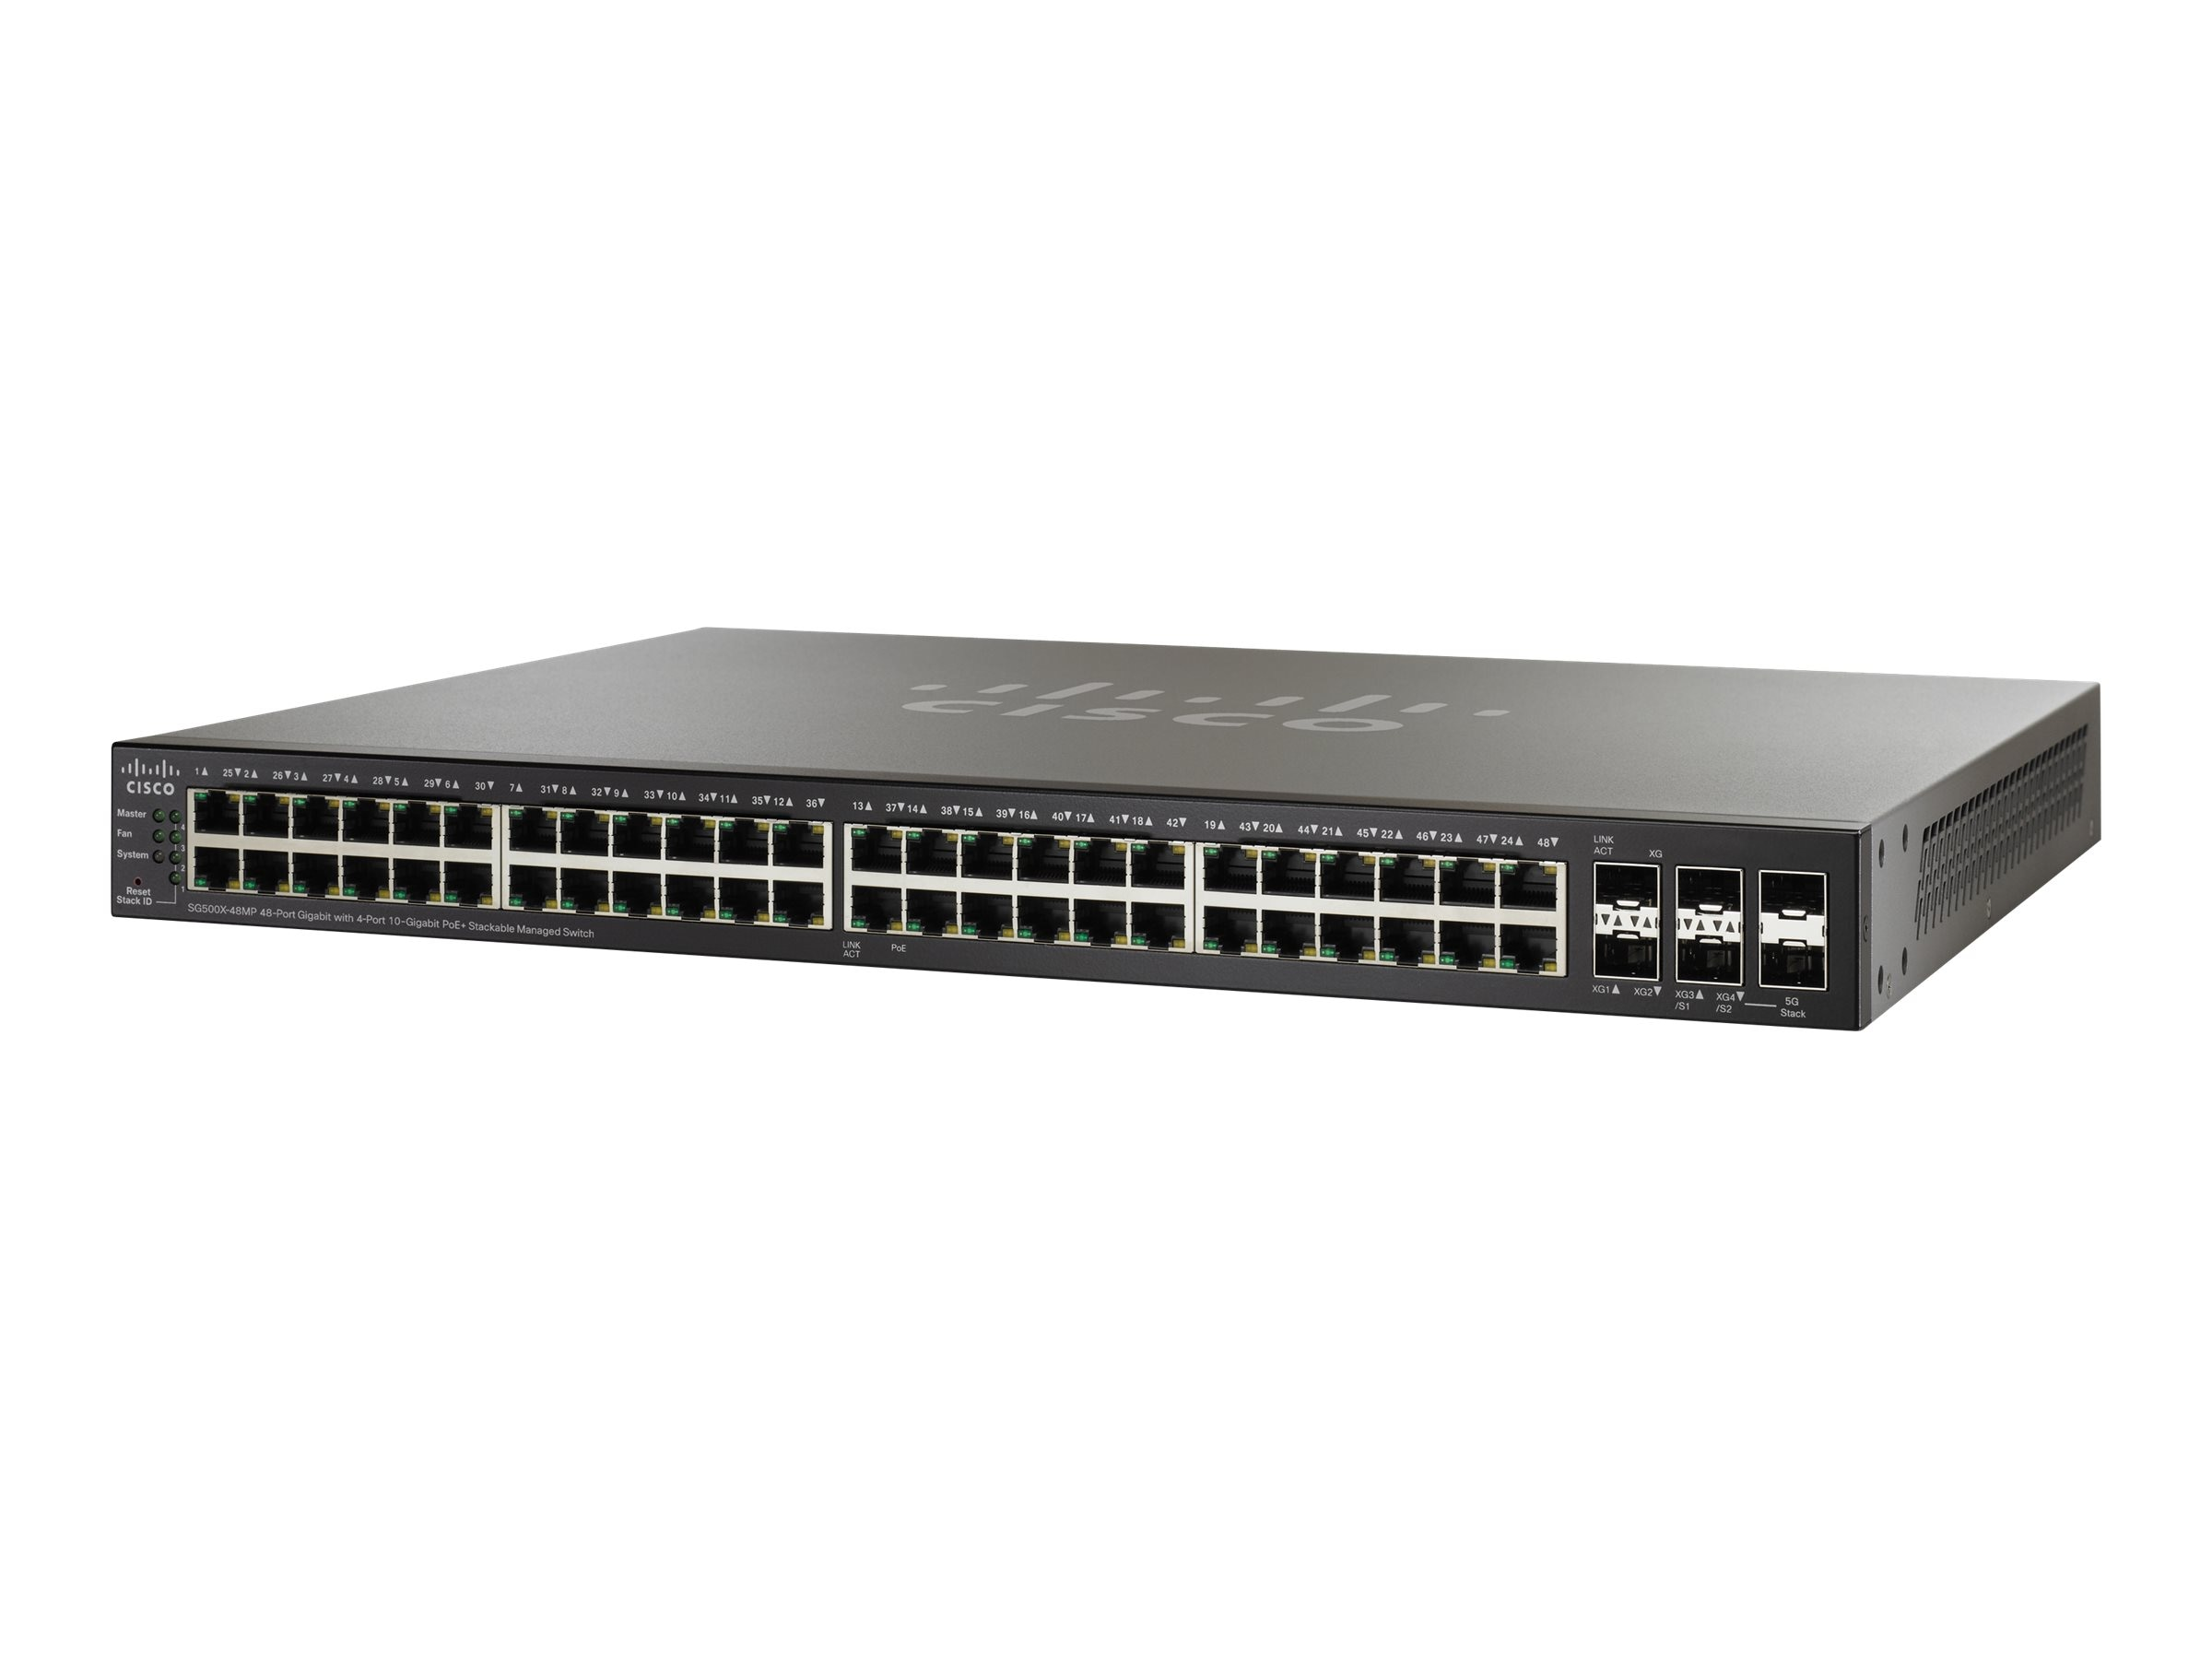 Cisco SG500X-48MPP 48-port Gigabit Switch + 4x10GE MAX POE